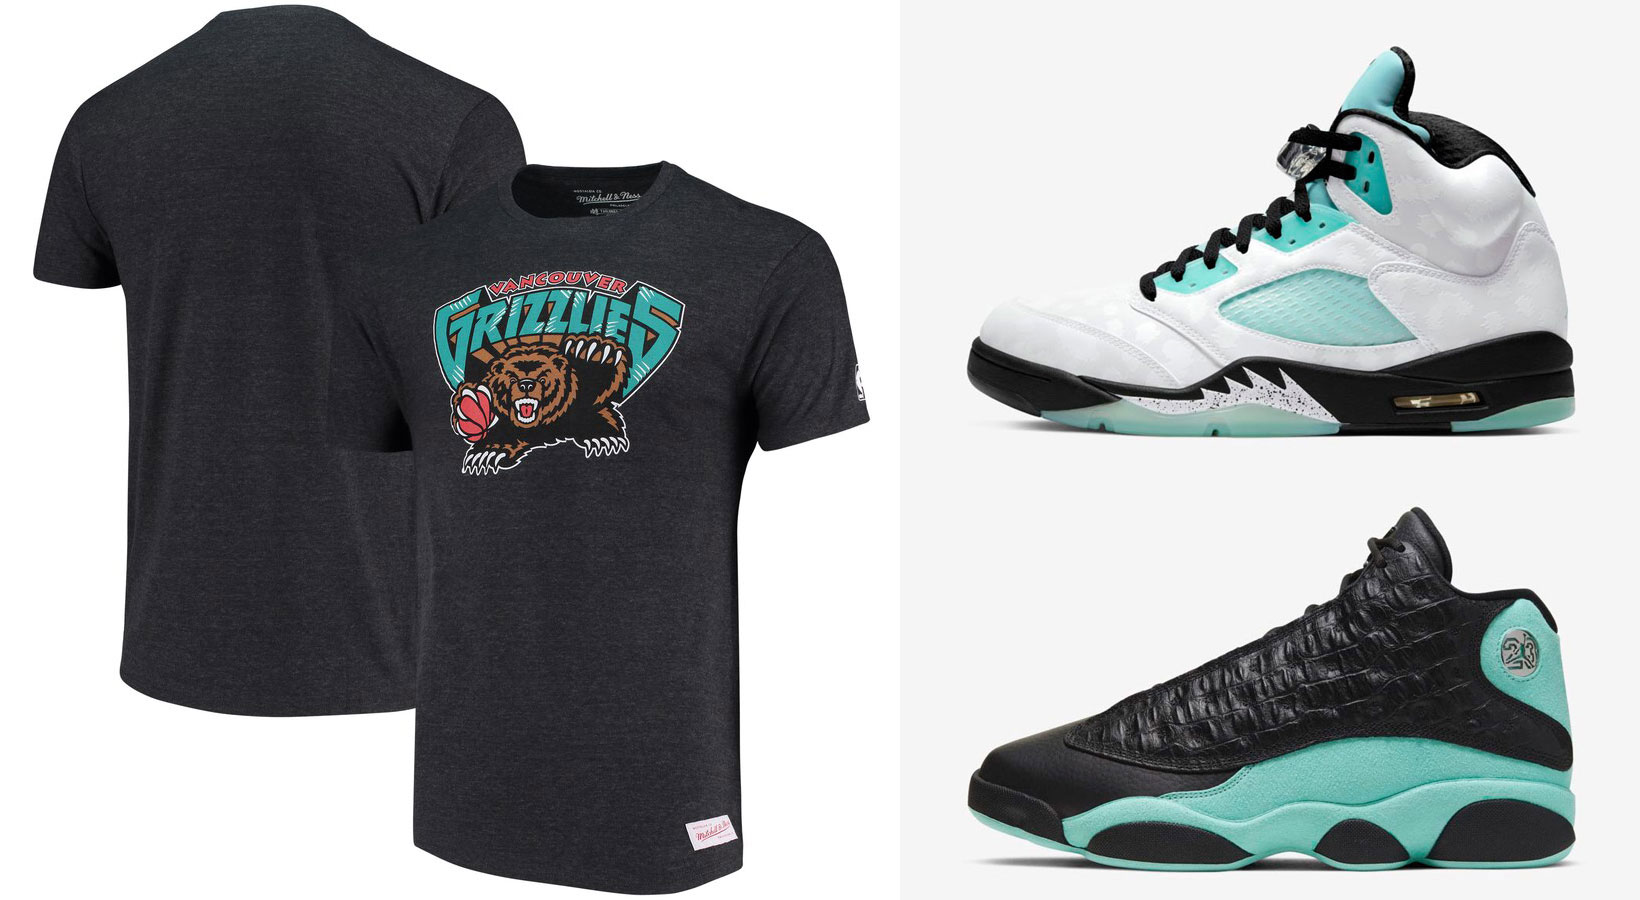 jordan-island-green-nba-retro-grizzlies-tee-shirt-match